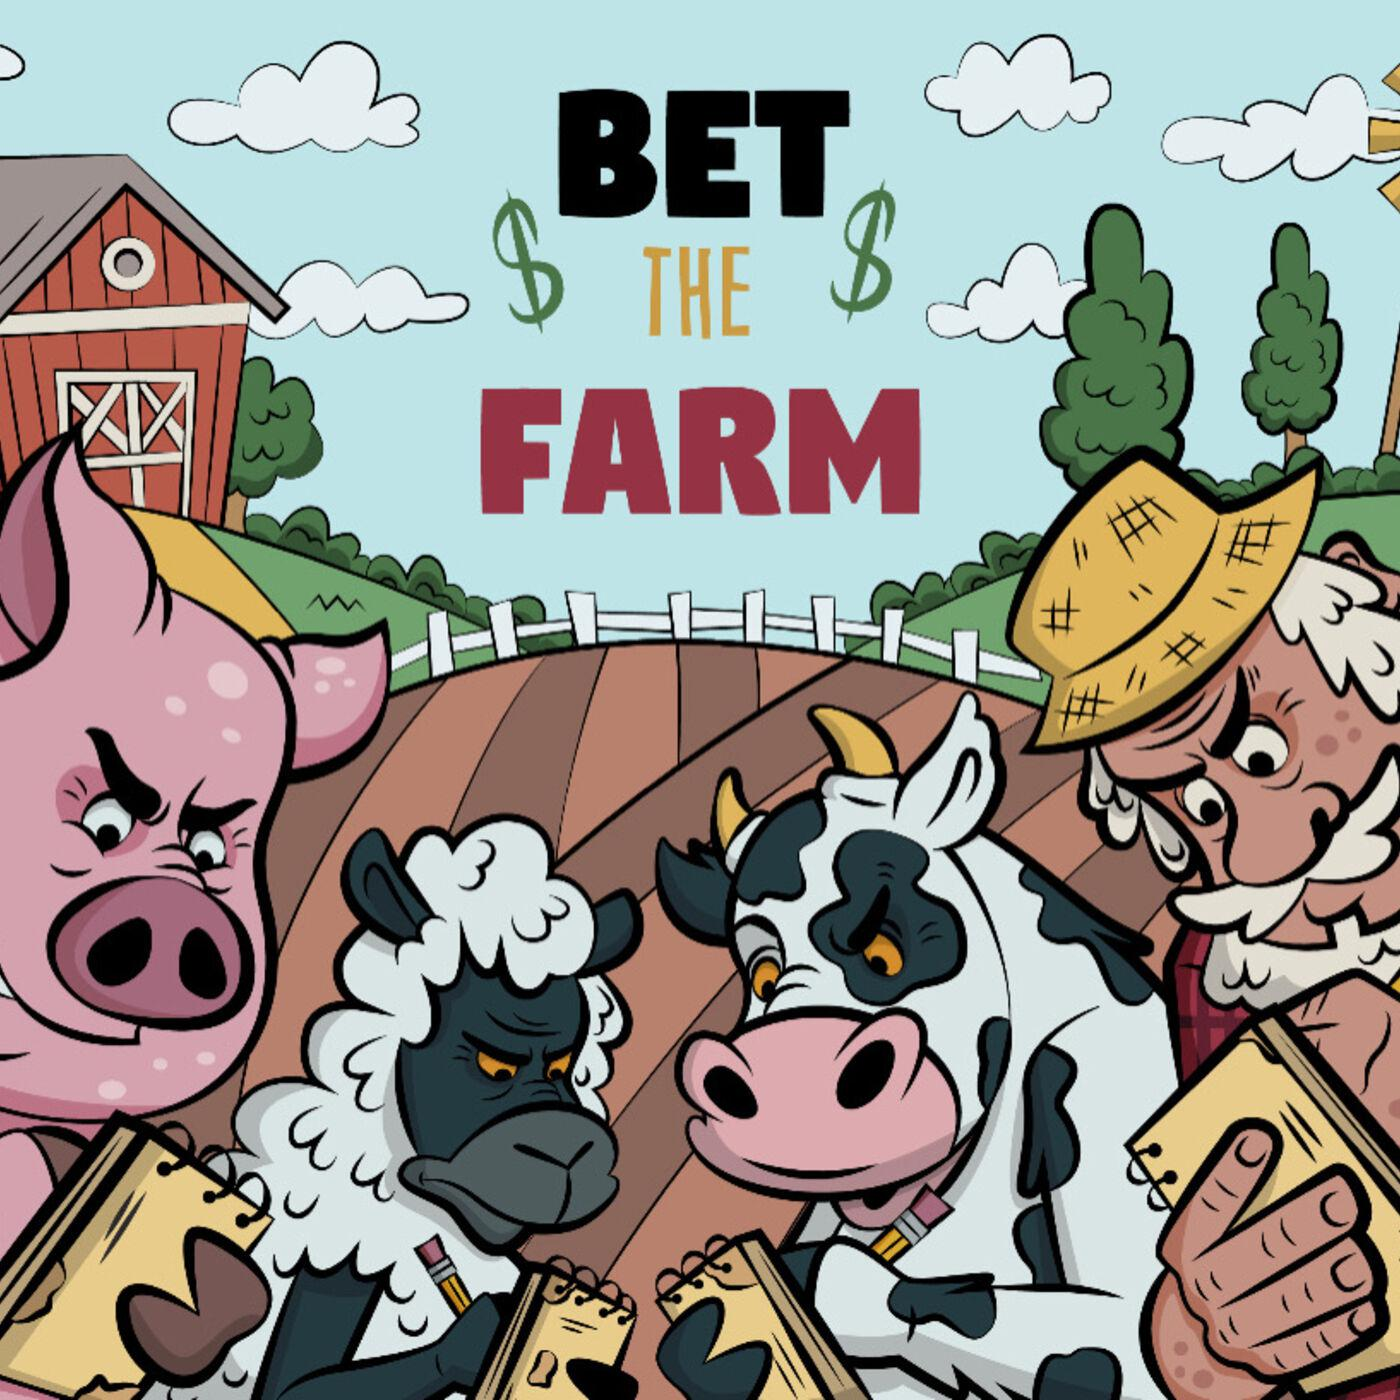 Go on bet the farm sports betting podcsst